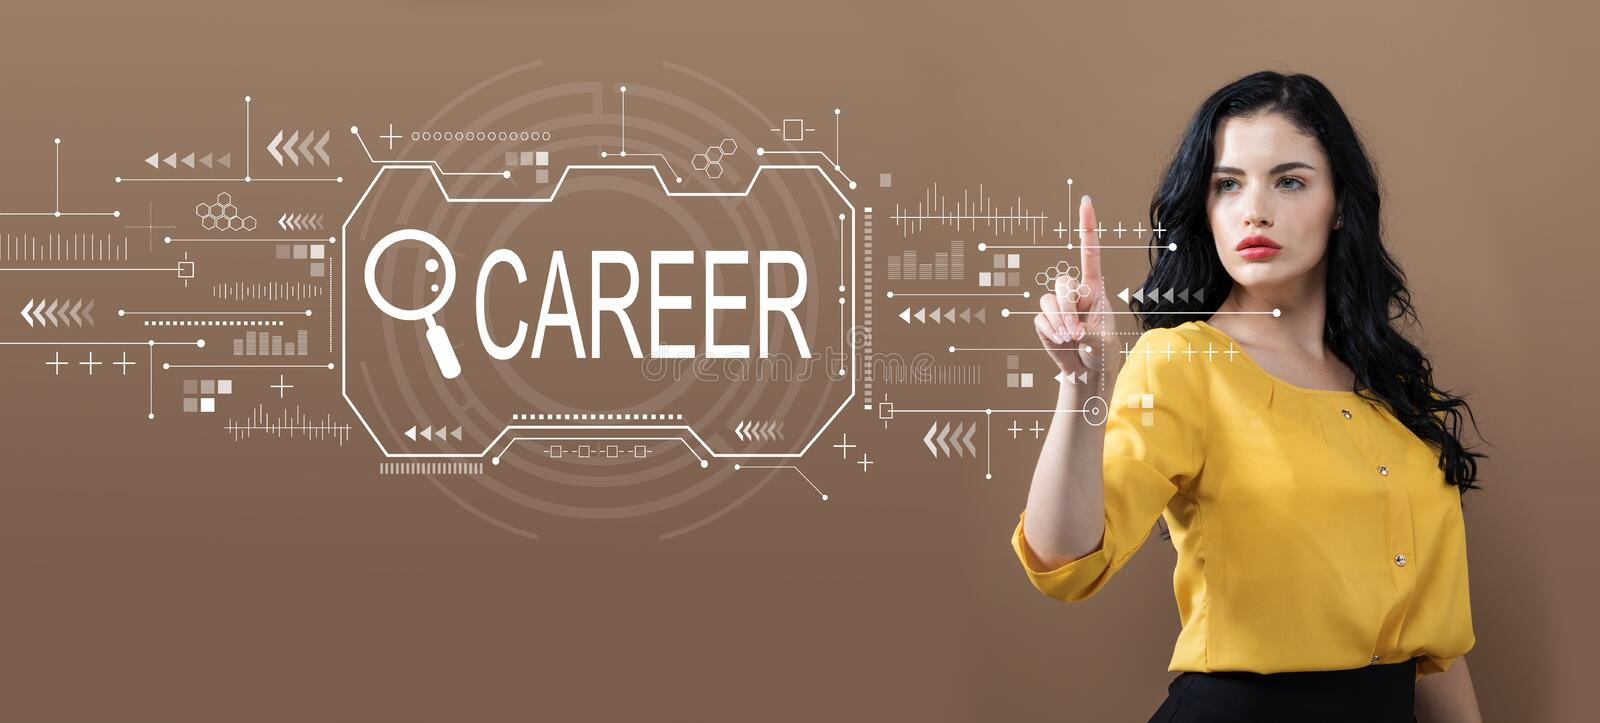 Searching career theme with business woman. On a brown background royalty free stock photos